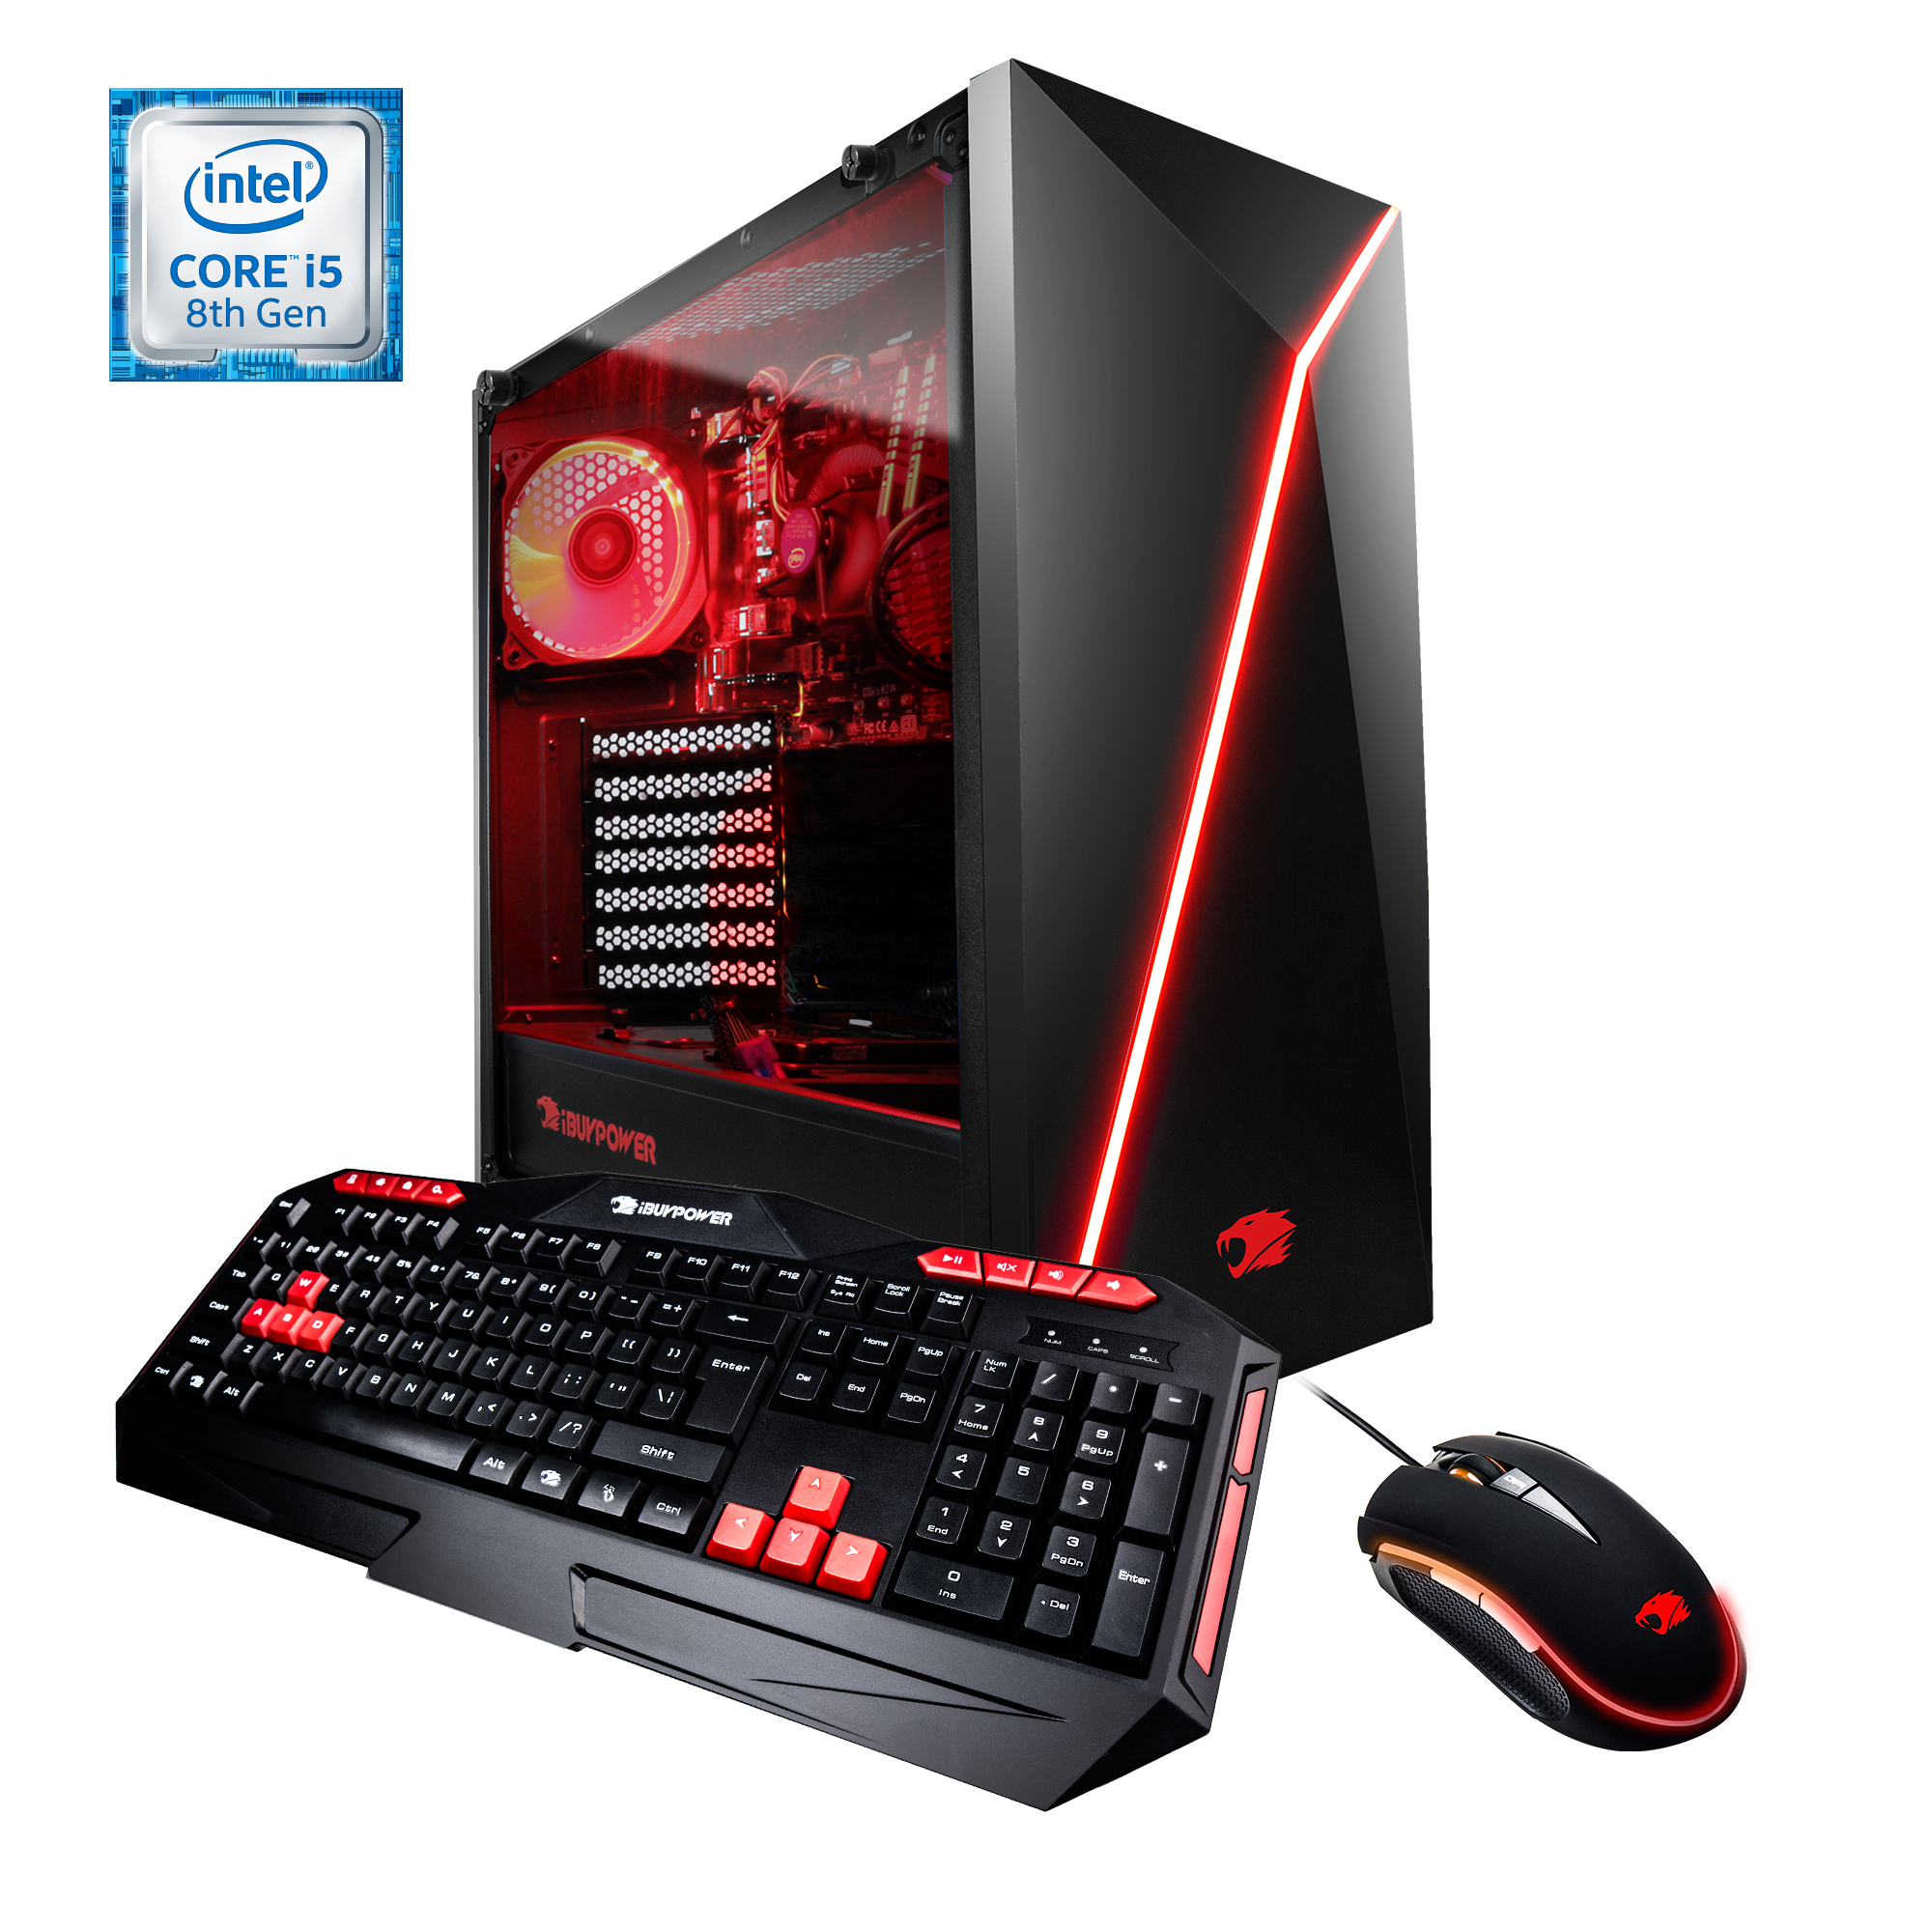 iBUYPOWER WA8430i - Gaming Desktop PC - Intel i7 8700- 16GB DDR4 Memory - NVIDIA GeForce GTX1070 8GB - 2TB Hard Drive – 120GB SSD - Window 10 Home 64bit(Monitor Not Included)